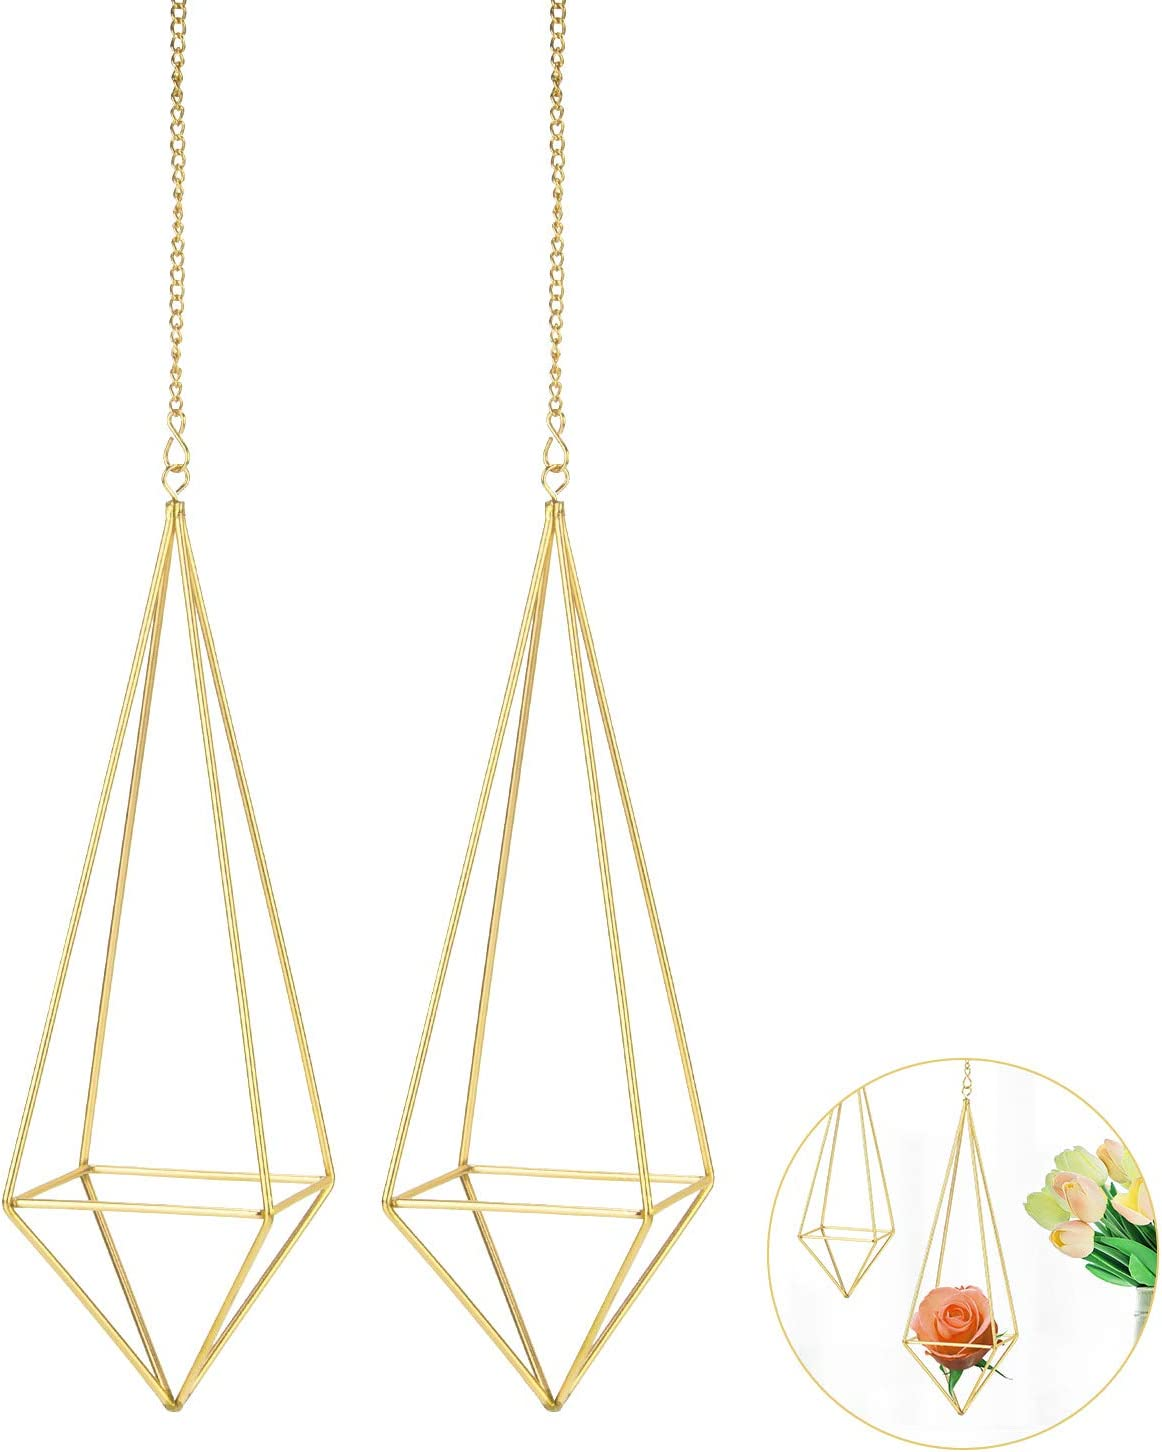 2 Packs Hanging Air Plant Holder Tabletop Metal Dec Easy-to-use Mini Rapid rise Himmeli